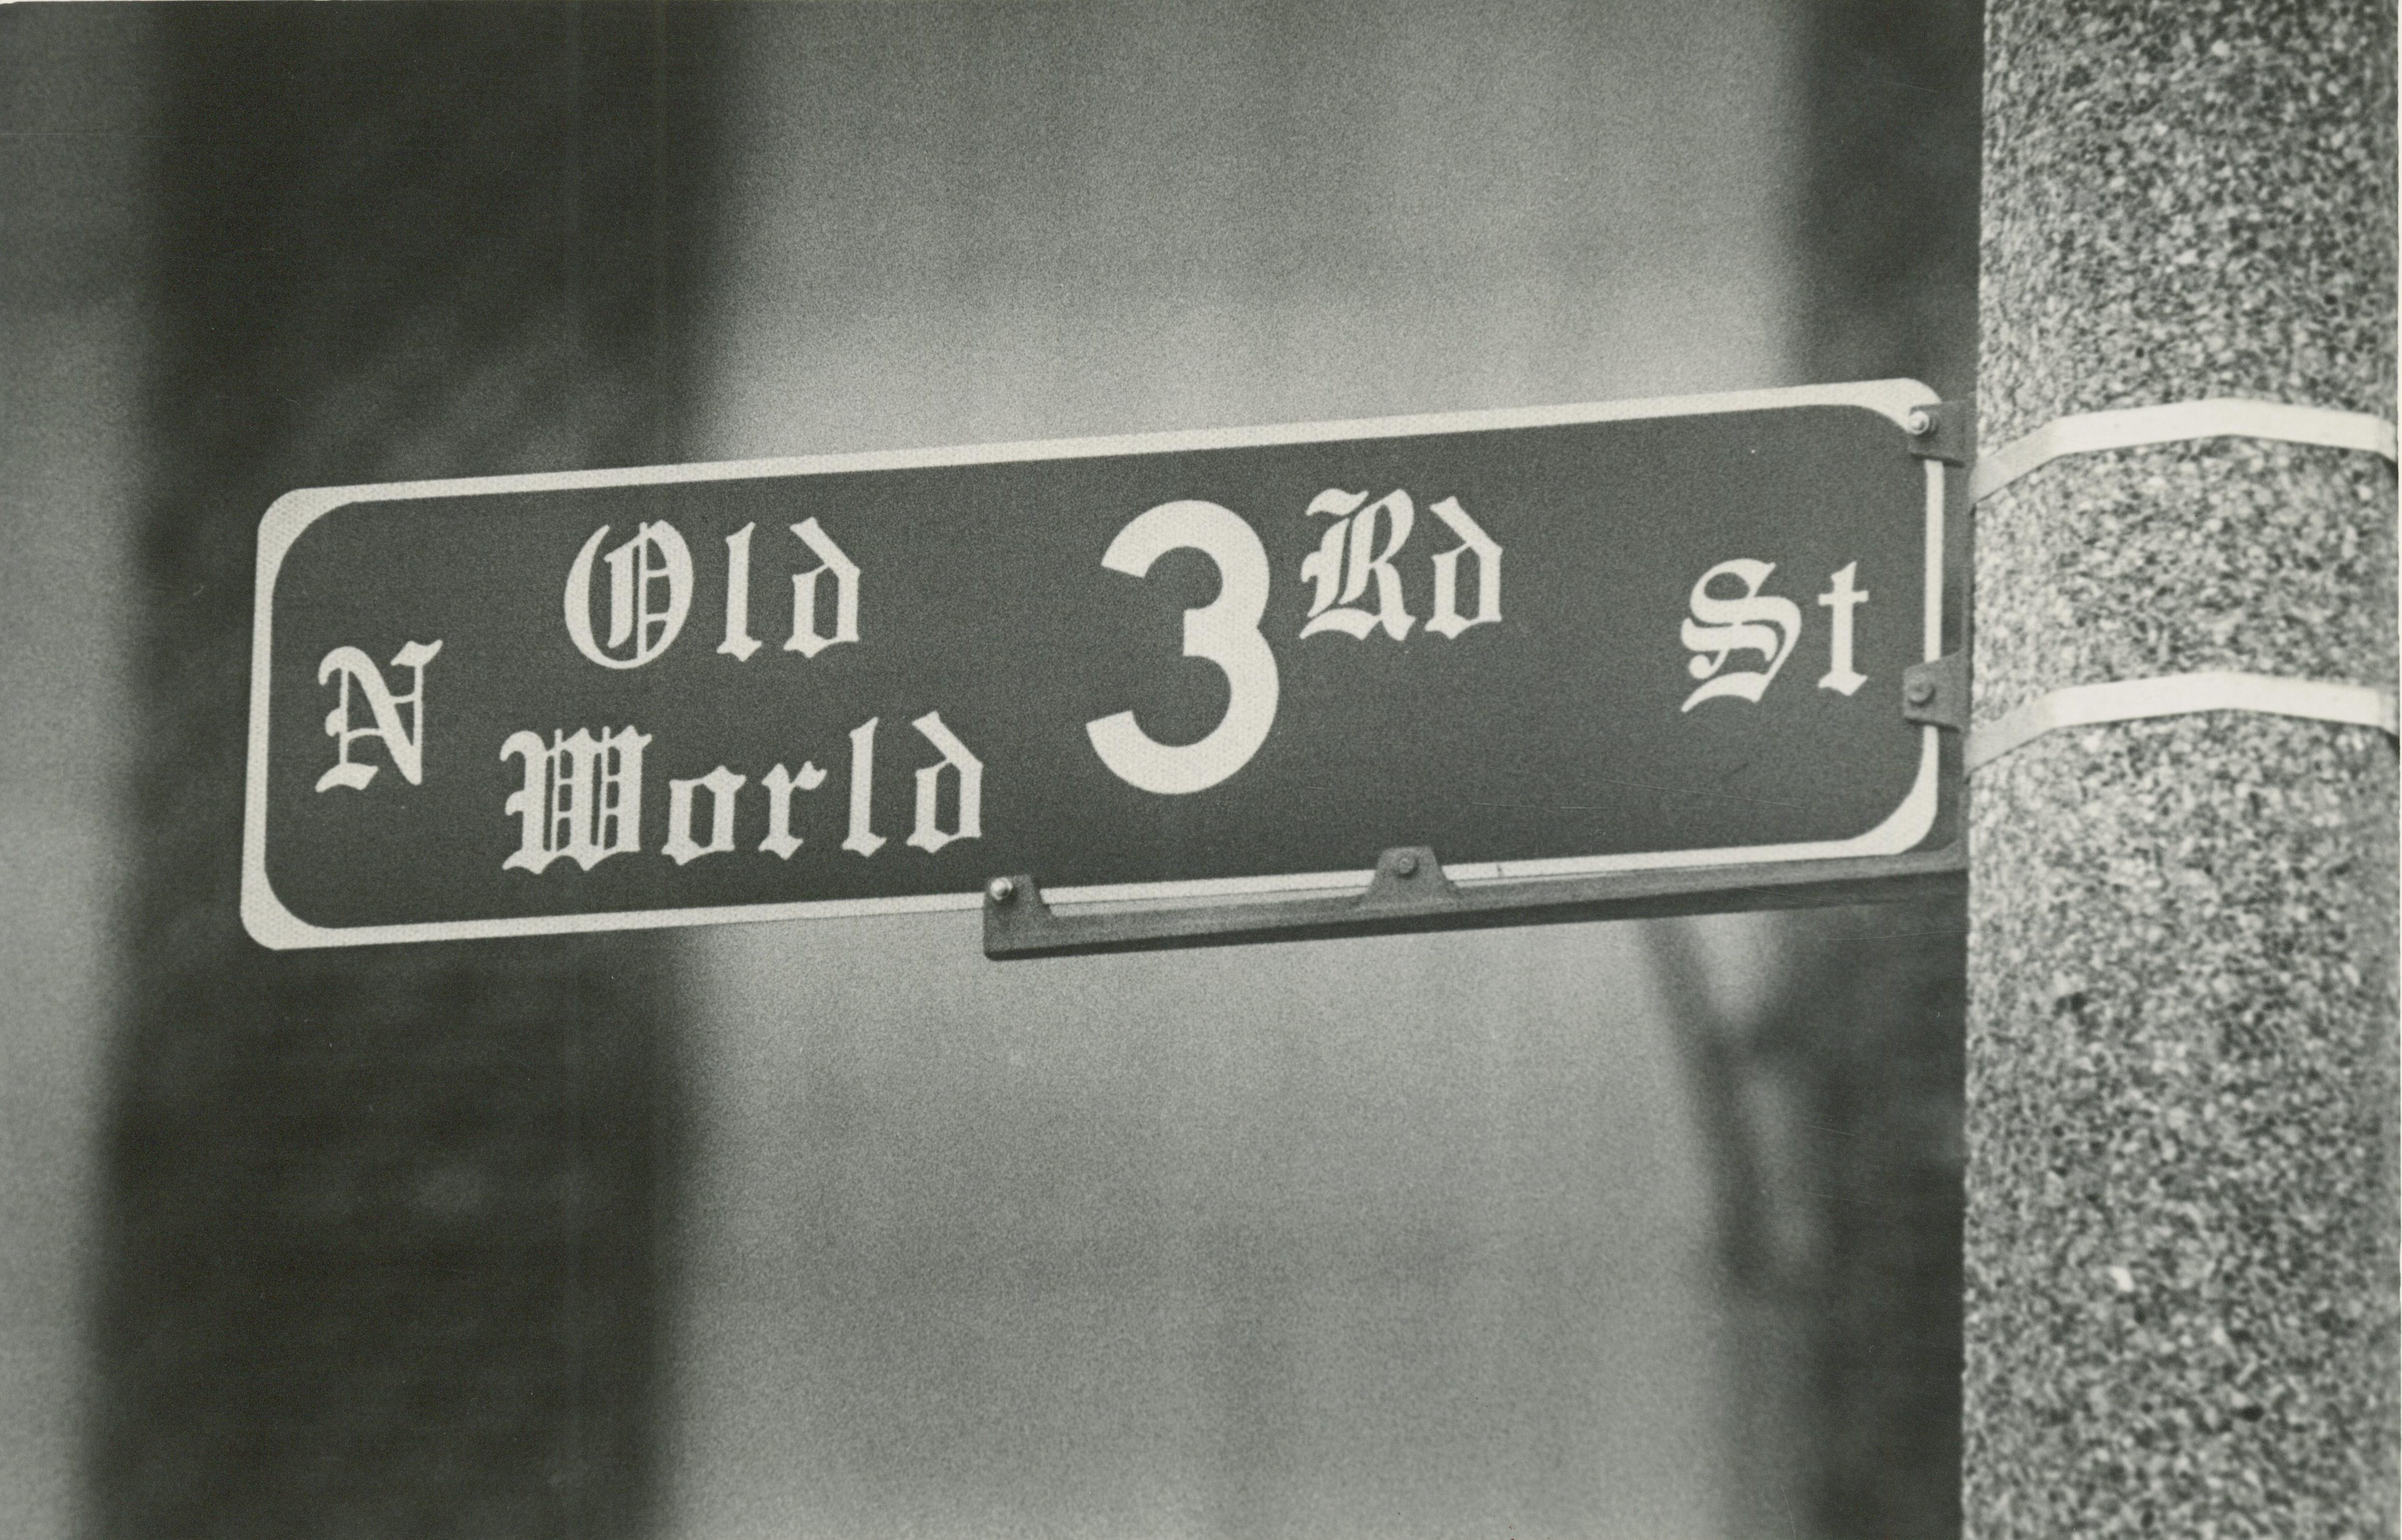 <table class=&quot;lightbox&quot;><tr><td colspan=2 class=&quot;lightbox-title&quot;>Old World Third Street</td></tr><tr><td colspan=2 class=&quot;lightbox-caption&quot;>In 1984, the City of Milwaukee renamed different sections of 3rd Street as Old World Third Street and Martin Luther King Drive, reversing a simplification of street name rationalization initiated earlier in the 20th century.</td></tr><tr><td colspan=2 class=&quot;lightbox-spacer&quot;></td></tr><tr class=&quot;lightbox-detail&quot;><td class=&quot;cell-title&quot;>Source: </td><td class=&quot;cell-value&quot;>From the Historic Photo Collection of the Milwaukee Public Library. Courtesy of the Milwaukee Journal Sentinel. Reprinted with permission.<br /><a href=&quot;http://content.mpl.org/cdm/singleitem/collection/HstoricPho/id/7163/rec/7&quot; target=&quot;_blank&quot;>Milwaukee Public Library</a></td></tr><tr class=&quot;filler-row&quot;><td colspan=2>&nbsp;</td></tr></table>